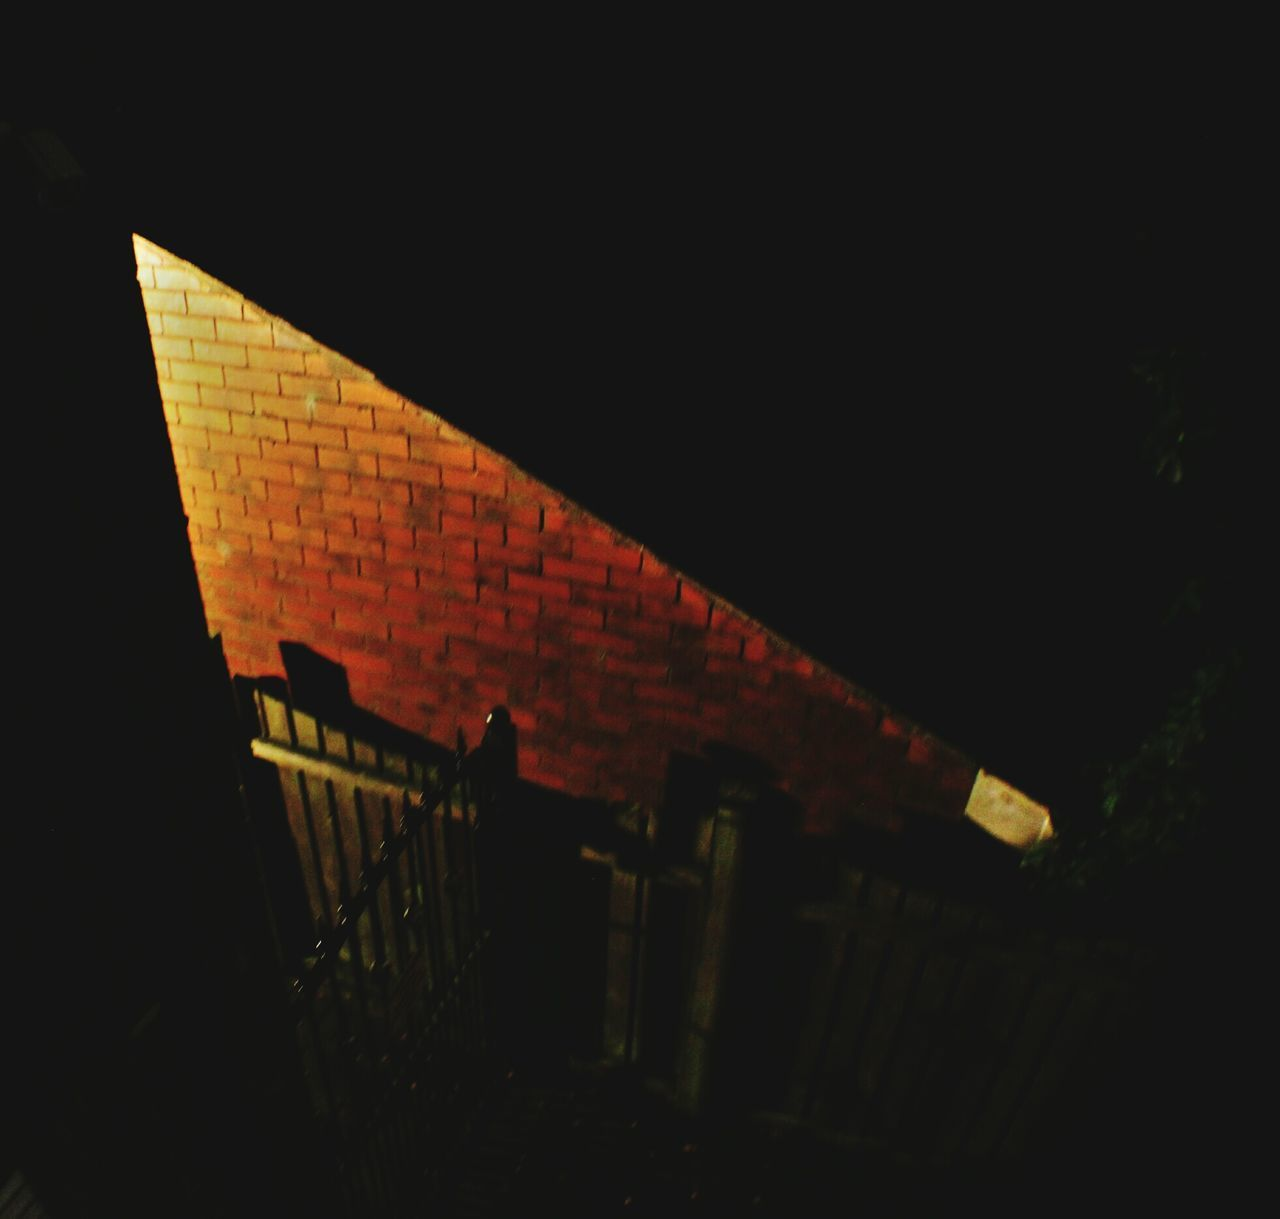 no people, architecture, built structure, night, indoors, illuminated, sky